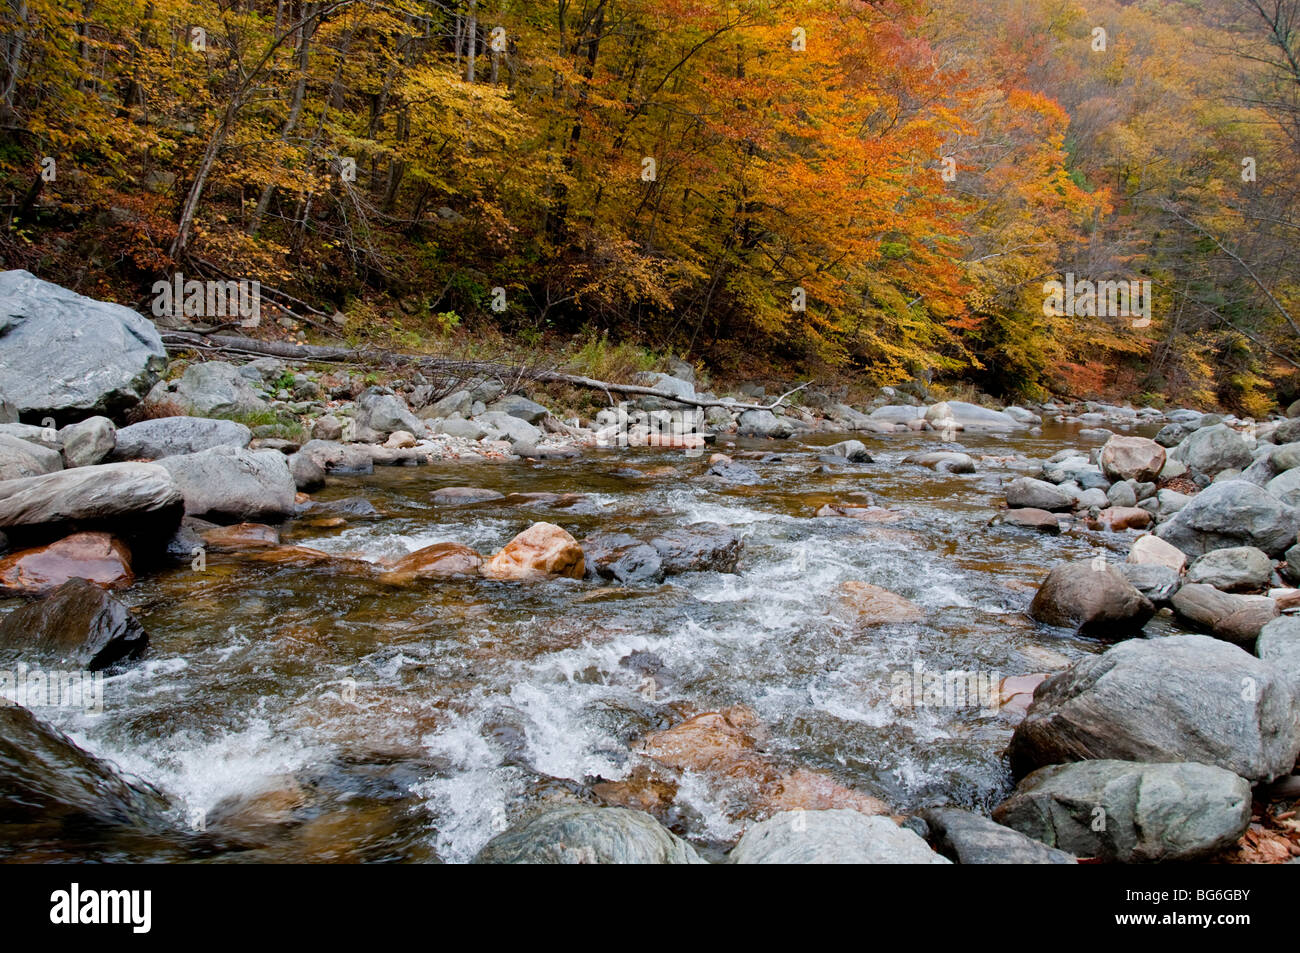 River Deerfield, Mohawk, Trail, Autumn Colours, Colors, Ash, Beach,Full Autumn Foliage. Massachusetts,USA Stock Photo